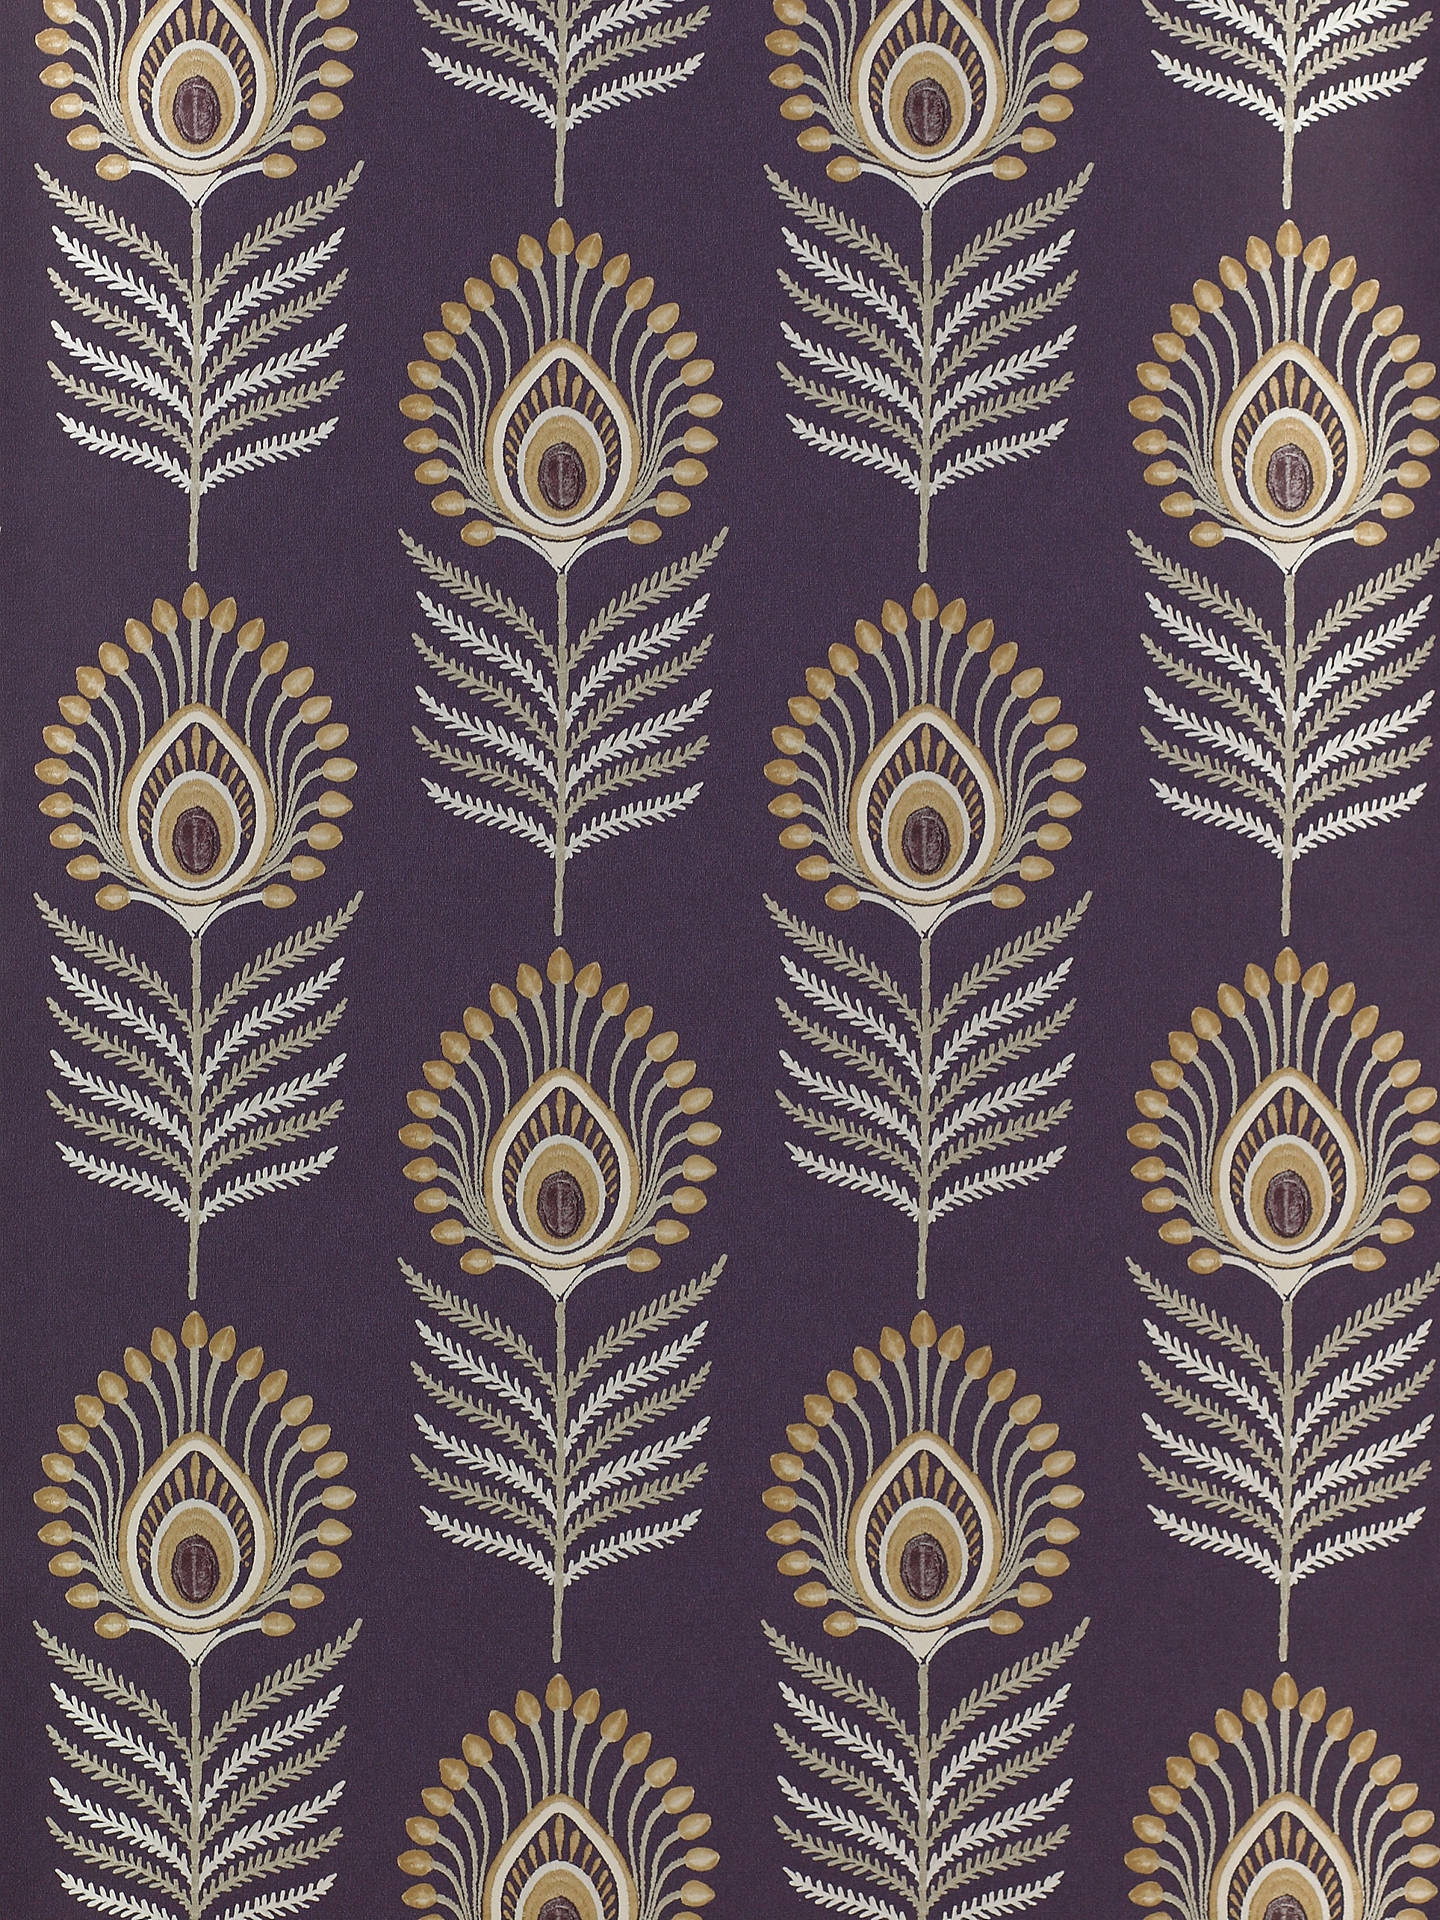 BuyJane Churchill Sula Wallpaper, Amethyst / Gold J150W-01 Online at johnlewis.com